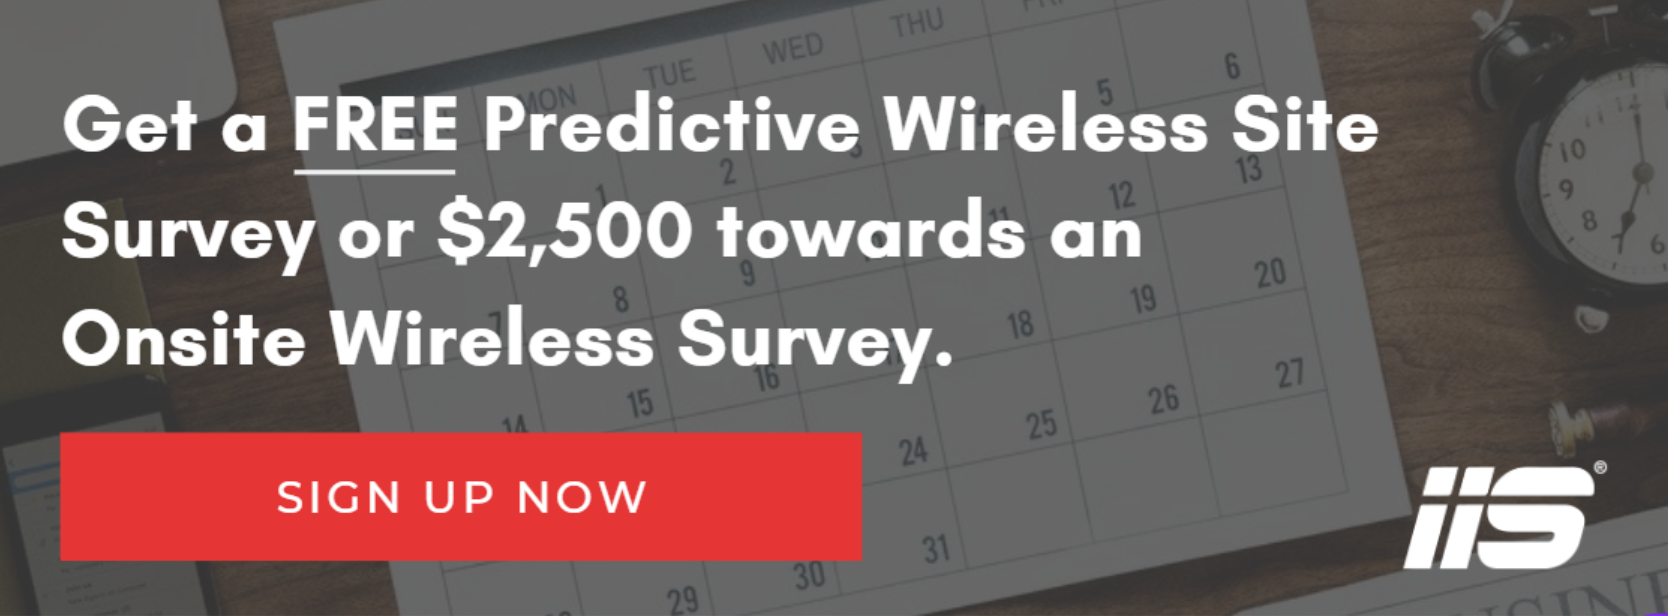 Free Predictive Wireless Site